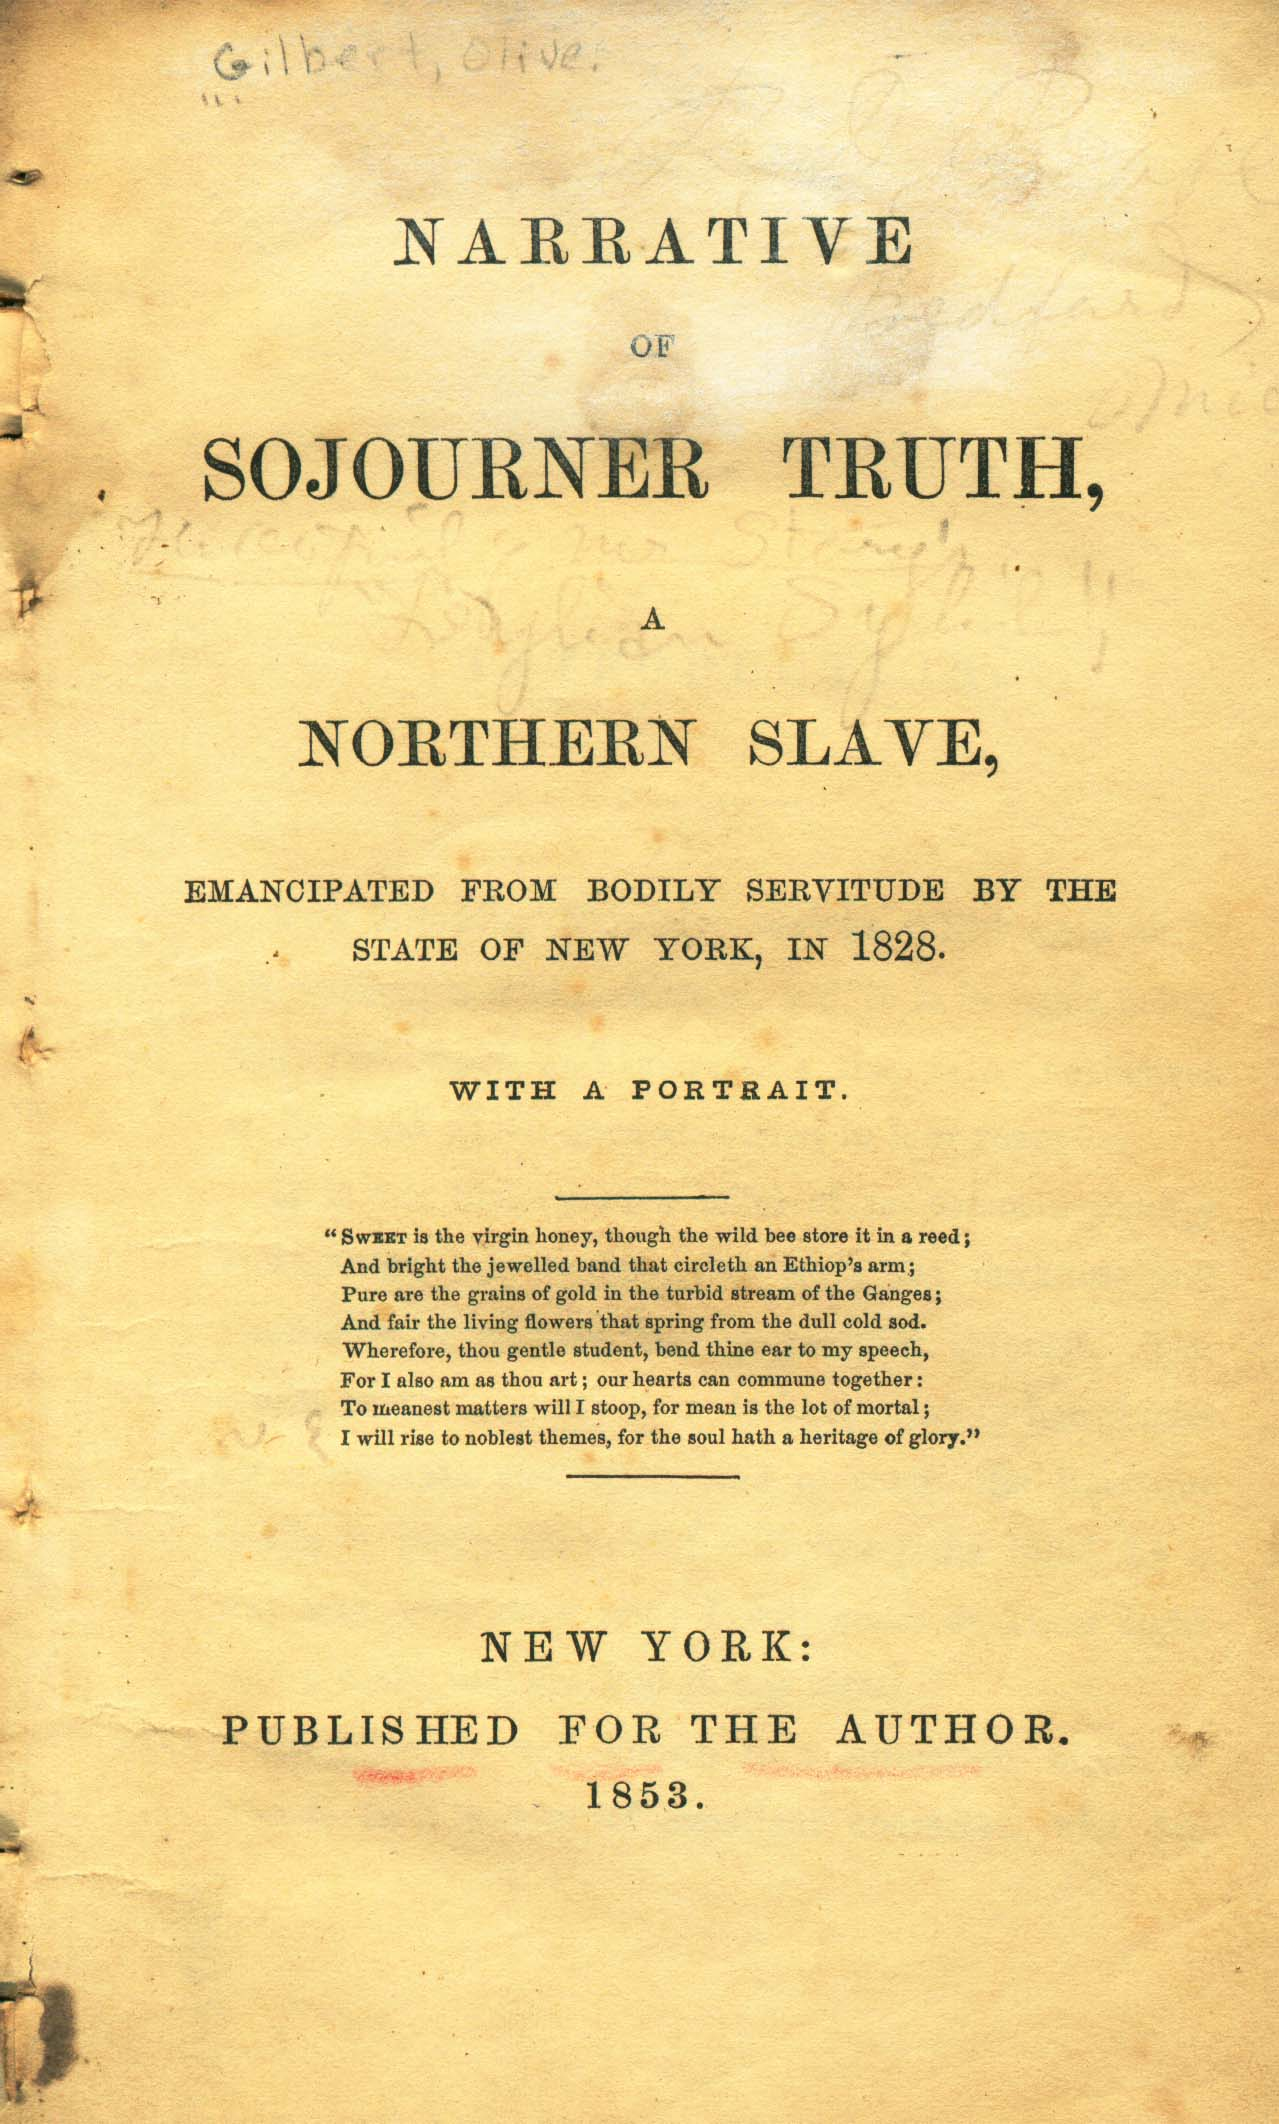 an analysis of the slavery and the anti slavery group called quakers Quakers had been leaders in the anti-slavery movement since the a group of philadelphia quakers and slavery, pennsylvania hall association http.